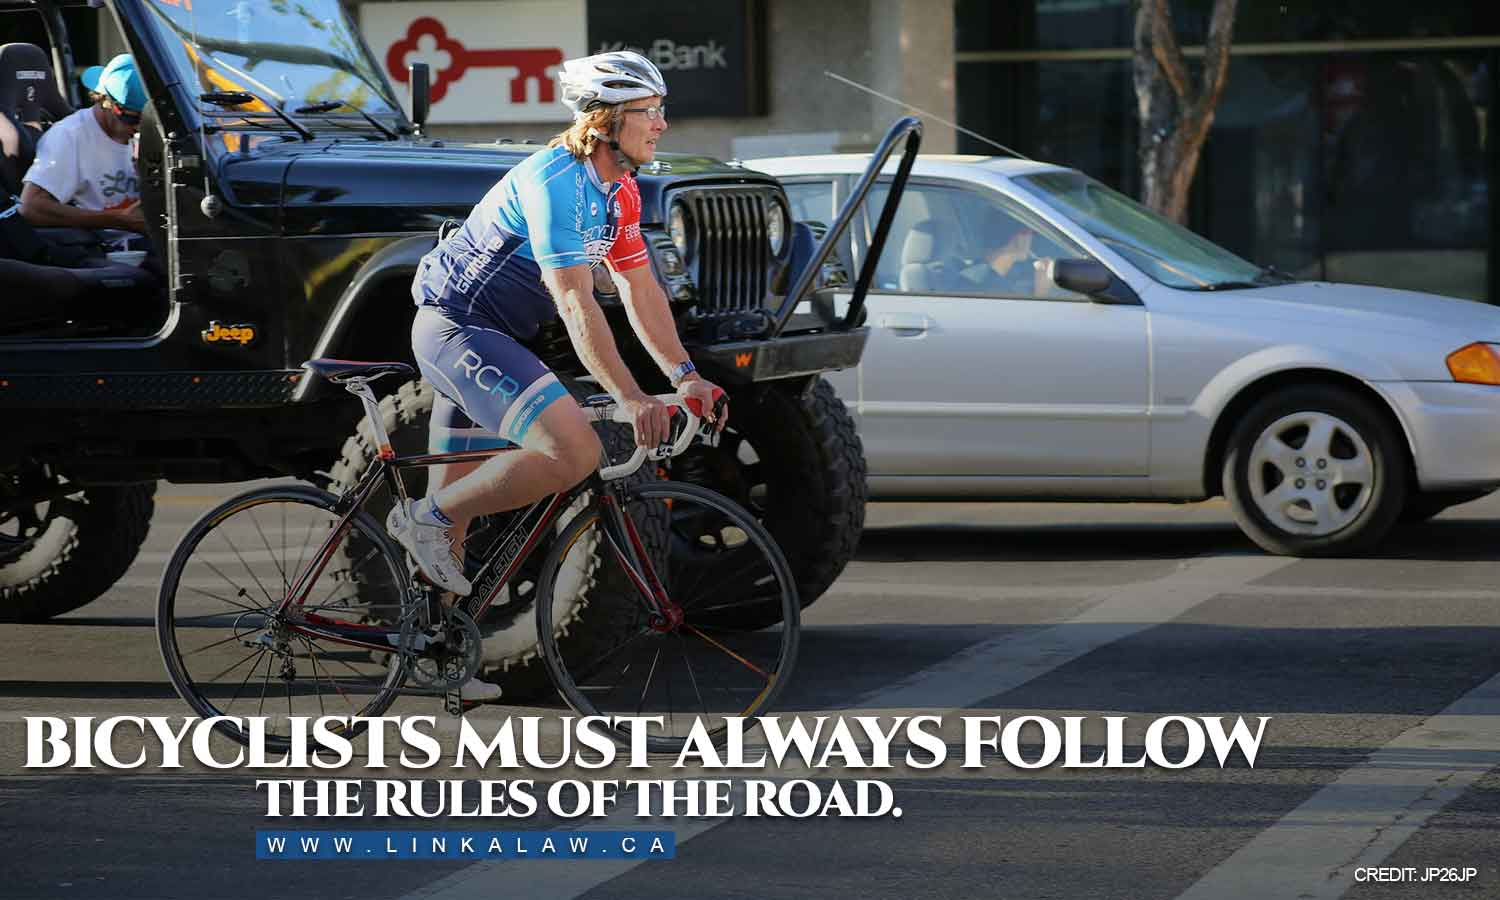 Bicyclists must always follow the rules of the road.